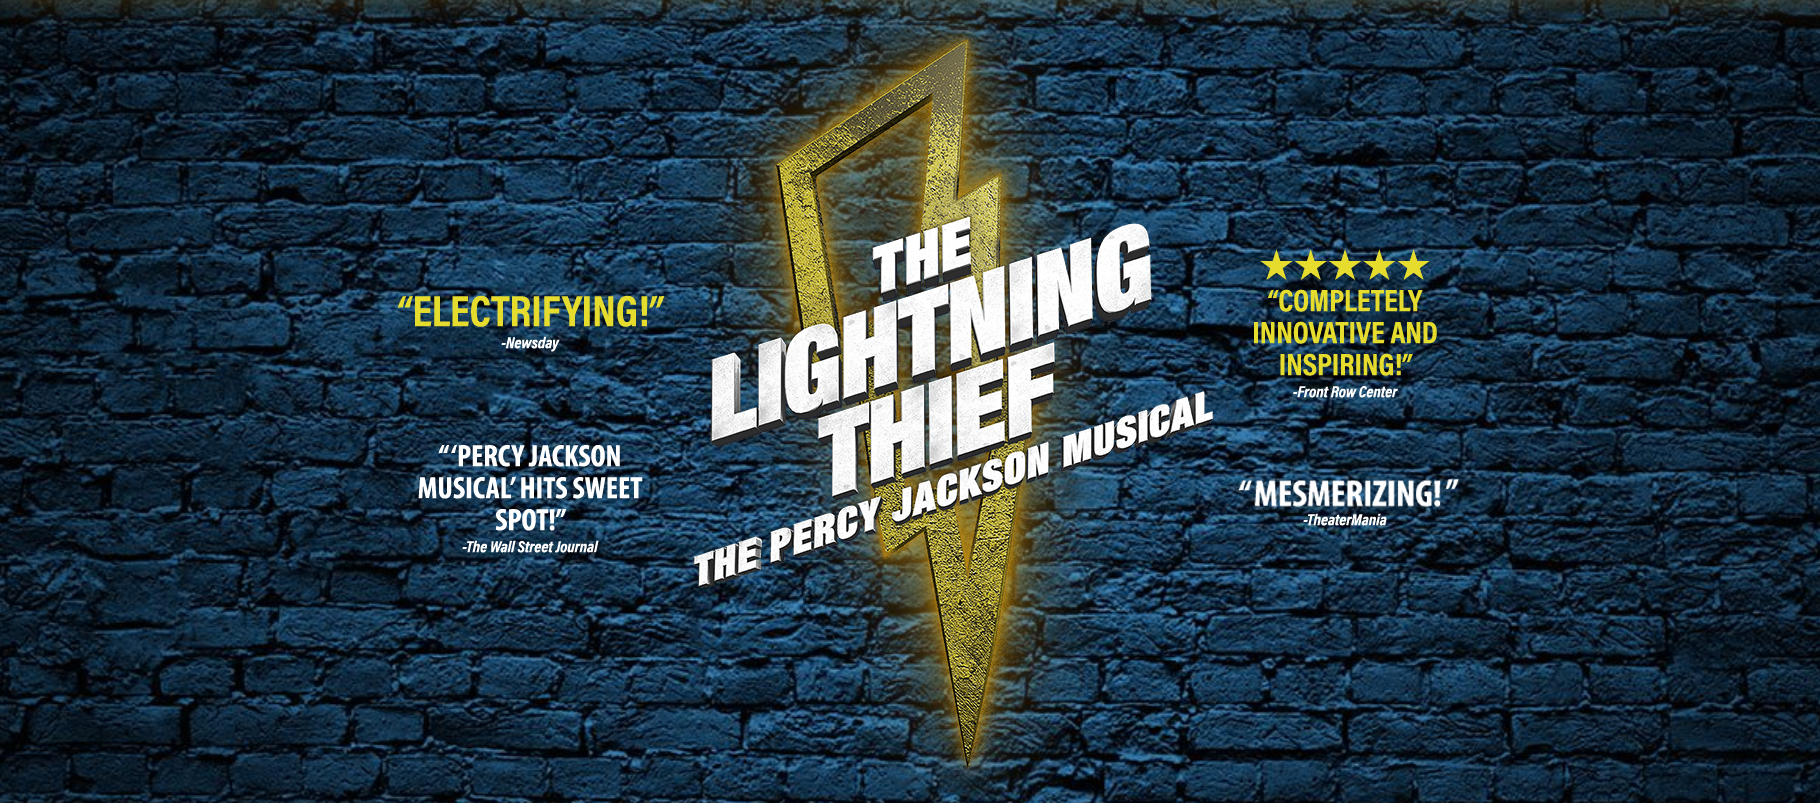 A lightening bolt outline appears on a blue brick background. It reads The Lightening Thief, The Percy Jackson Musical.